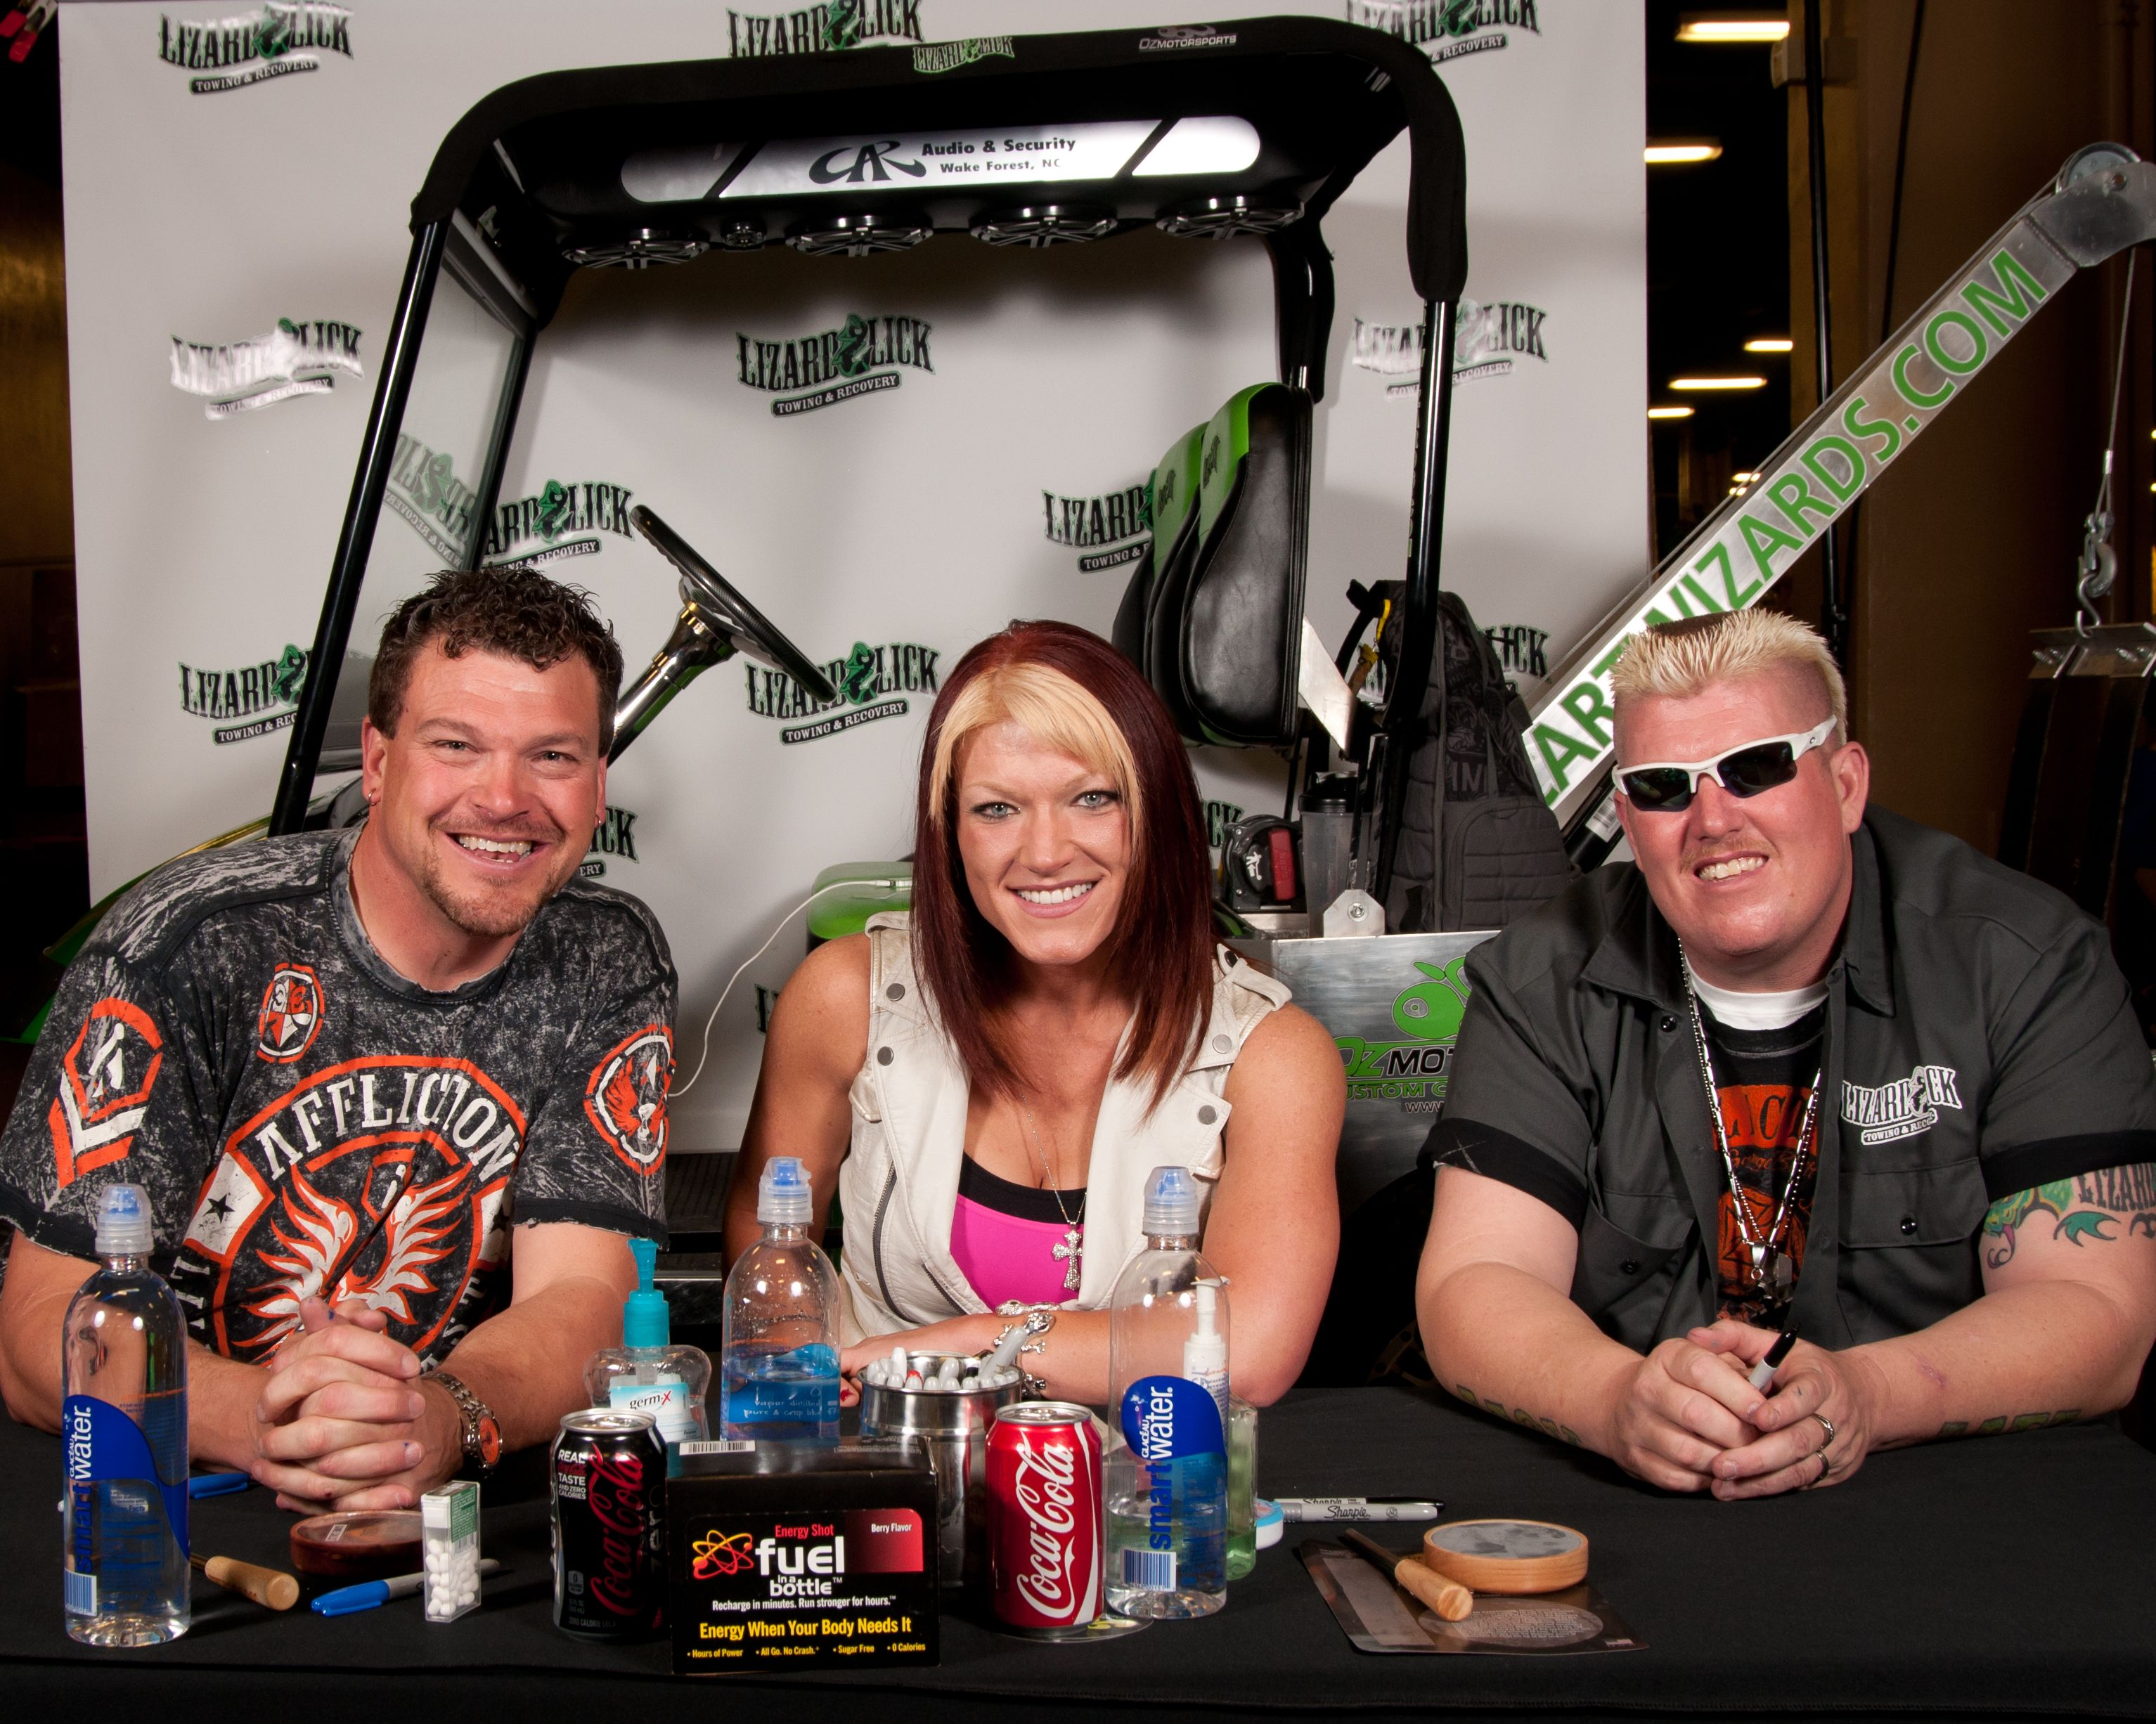 Meet n greets lizard lick towing youve just been licked meet n greets lizard lick towing kristyandbryce Image collections